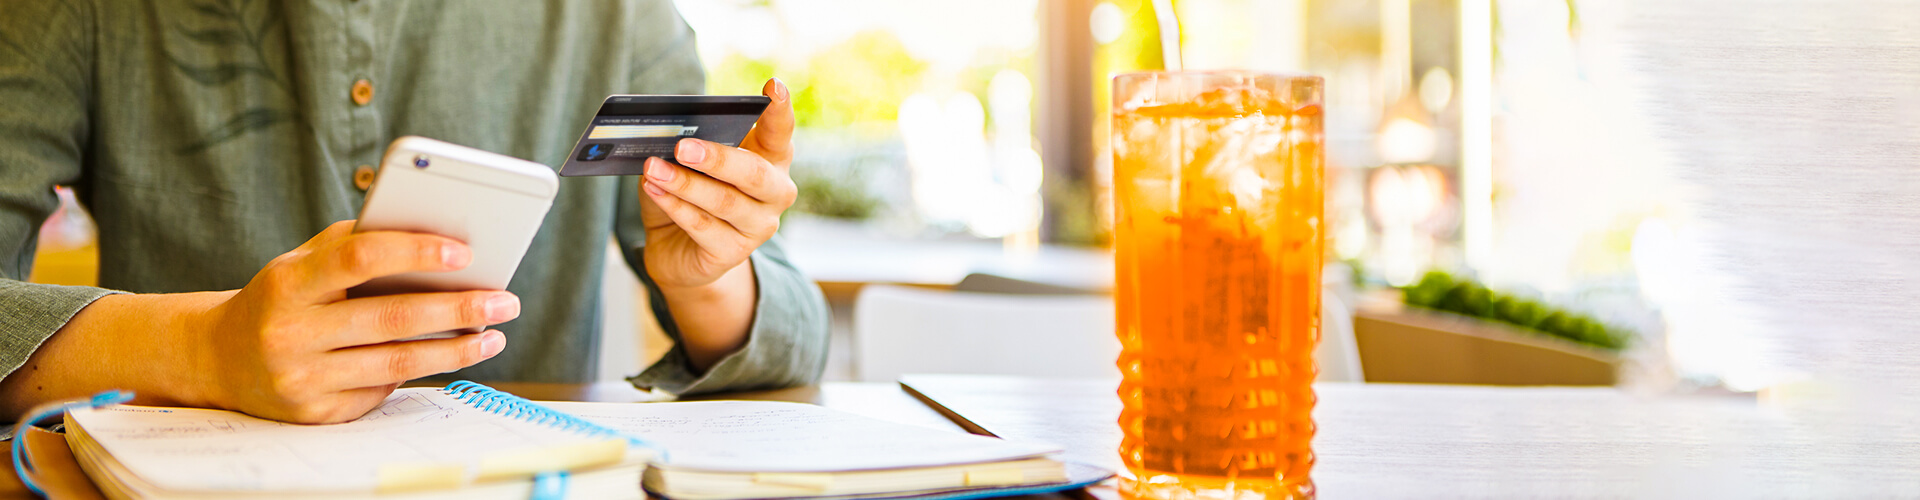 Person holding smartphone in one hand and Ascentra credit card in other. Hand holding smartphone is resting on a notebook. Person is wearing a green shirt